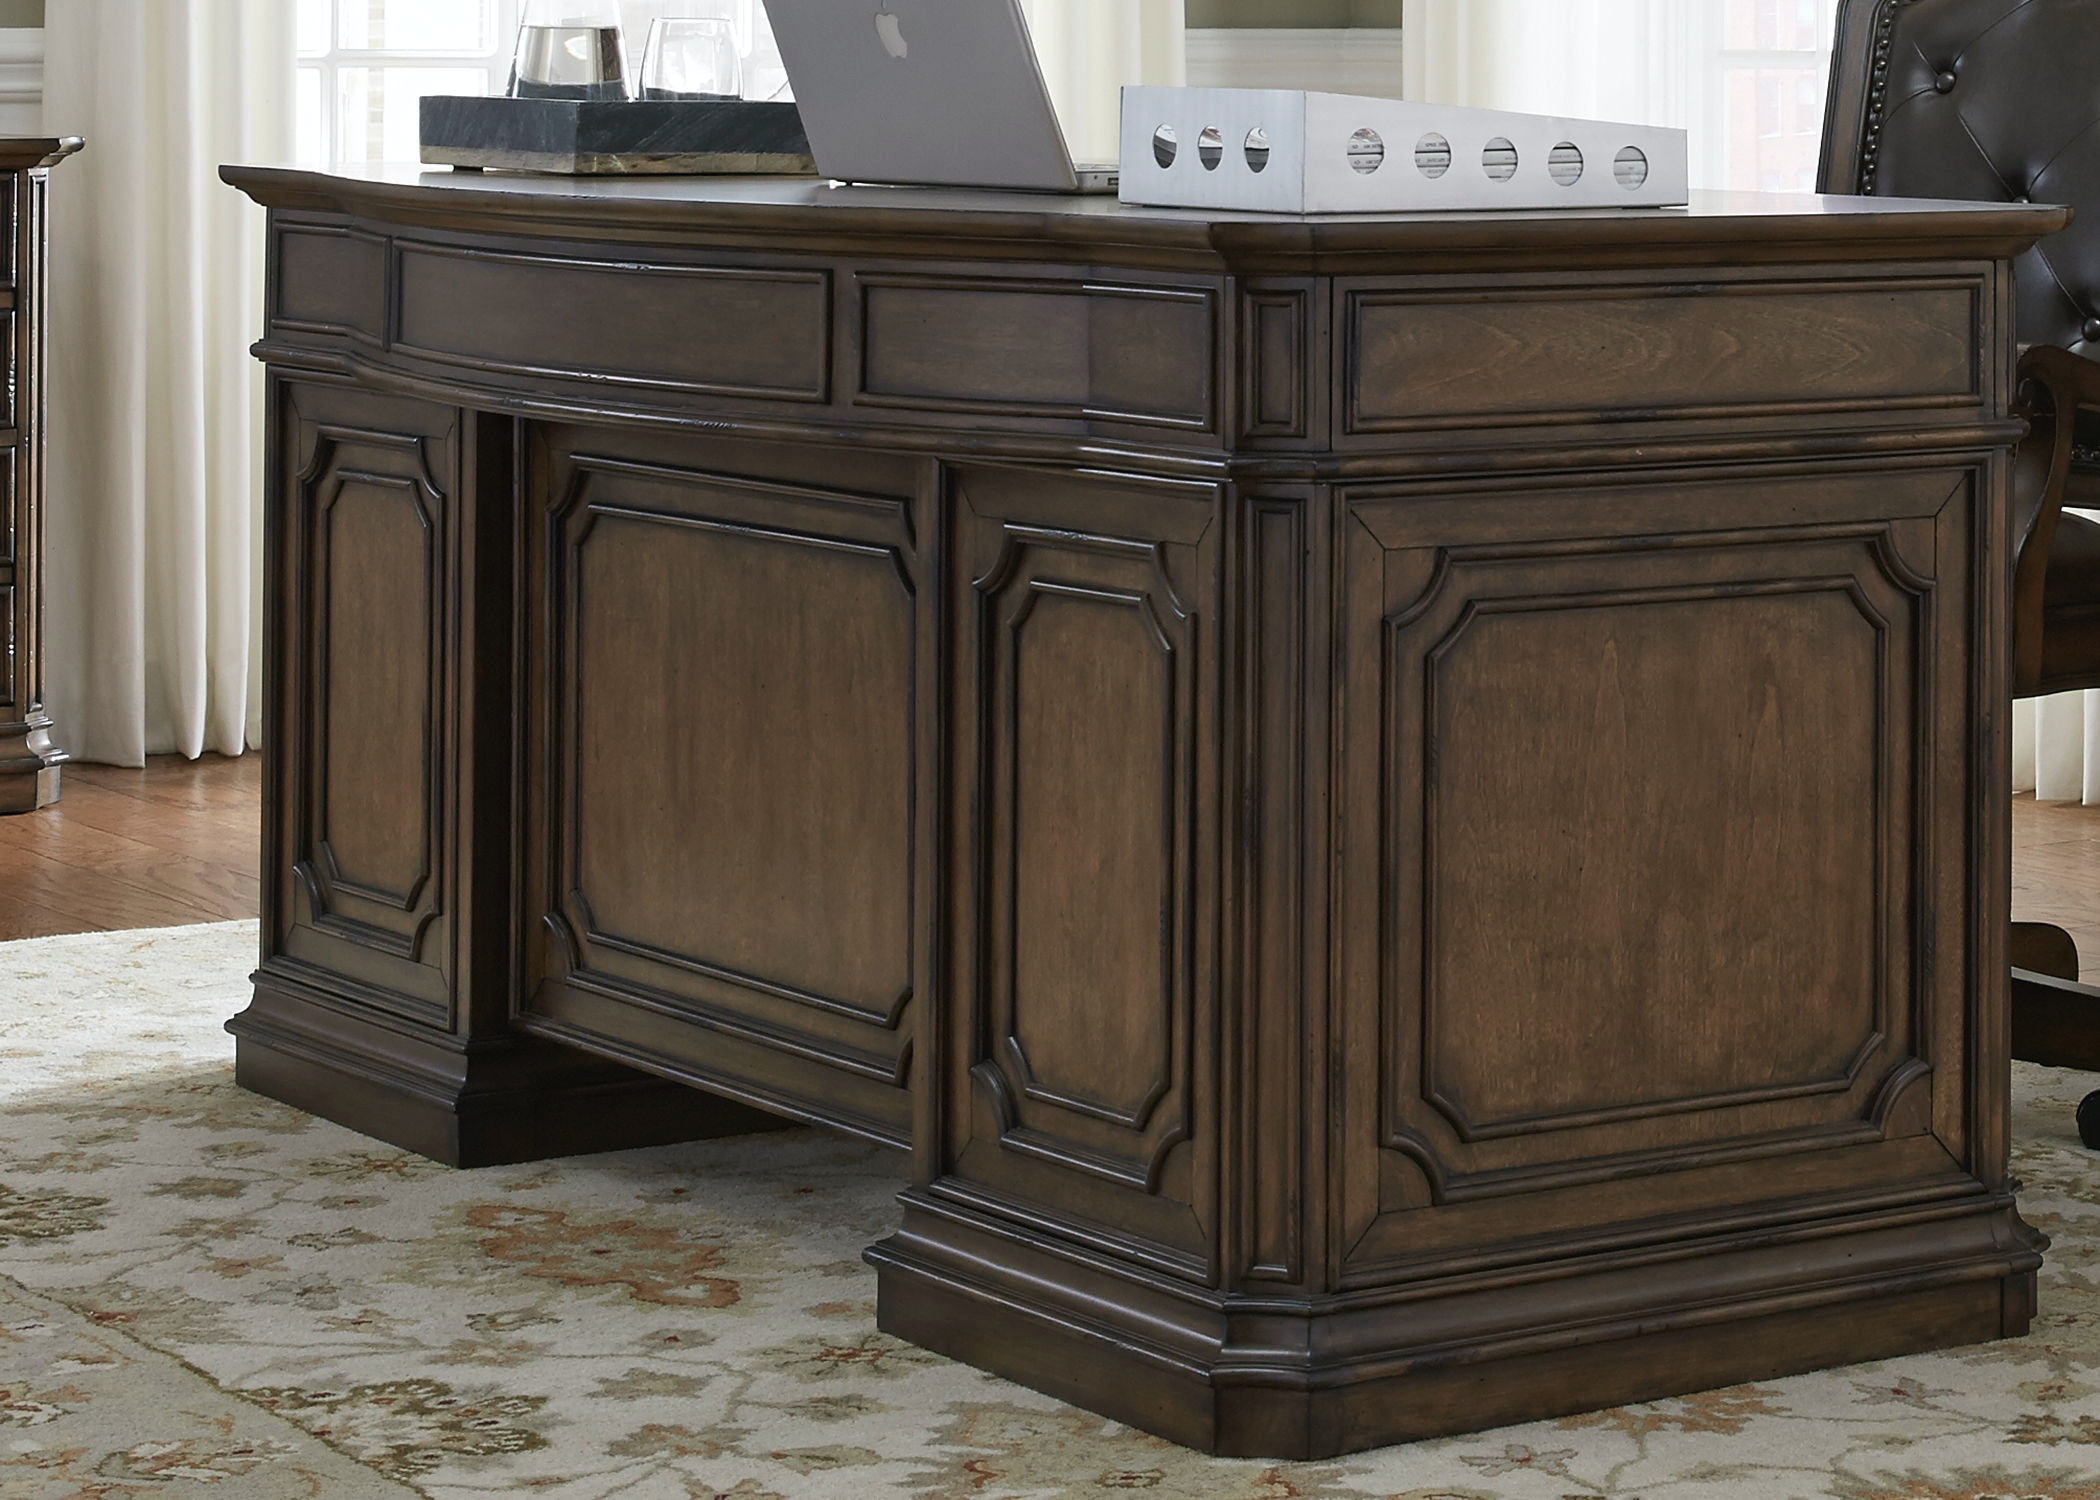 Attrayant Liberty Furniture Home Office Jr. Executive Desk Base 487 HO105B At B.F.  Myers Furniture